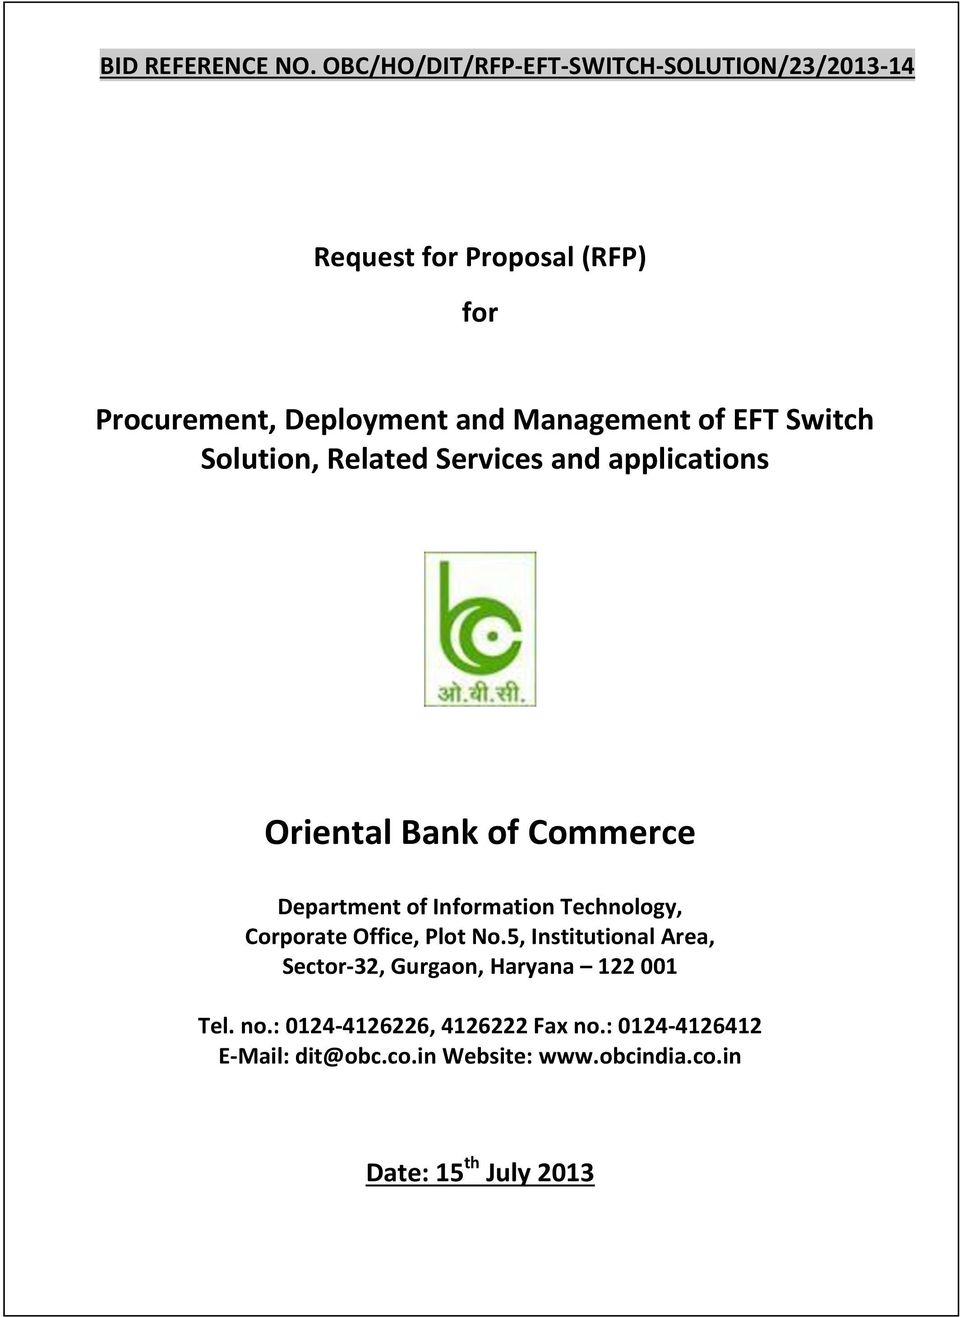 Oriental Bank of Commerce - PDF